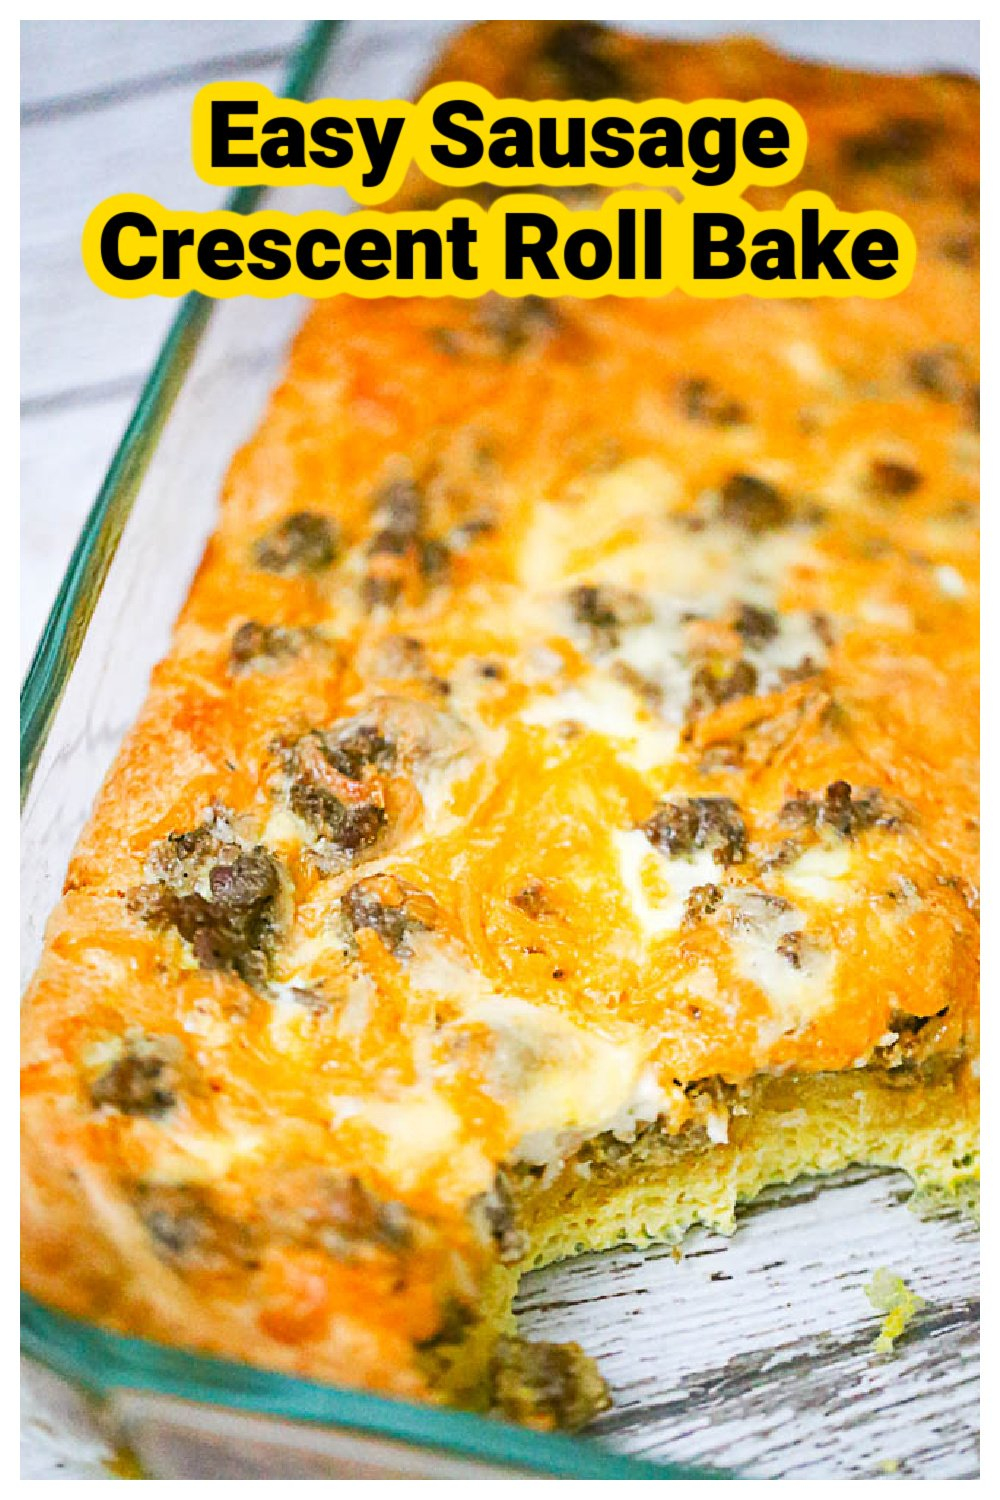 Easy Sausage Crescent Roll Bake